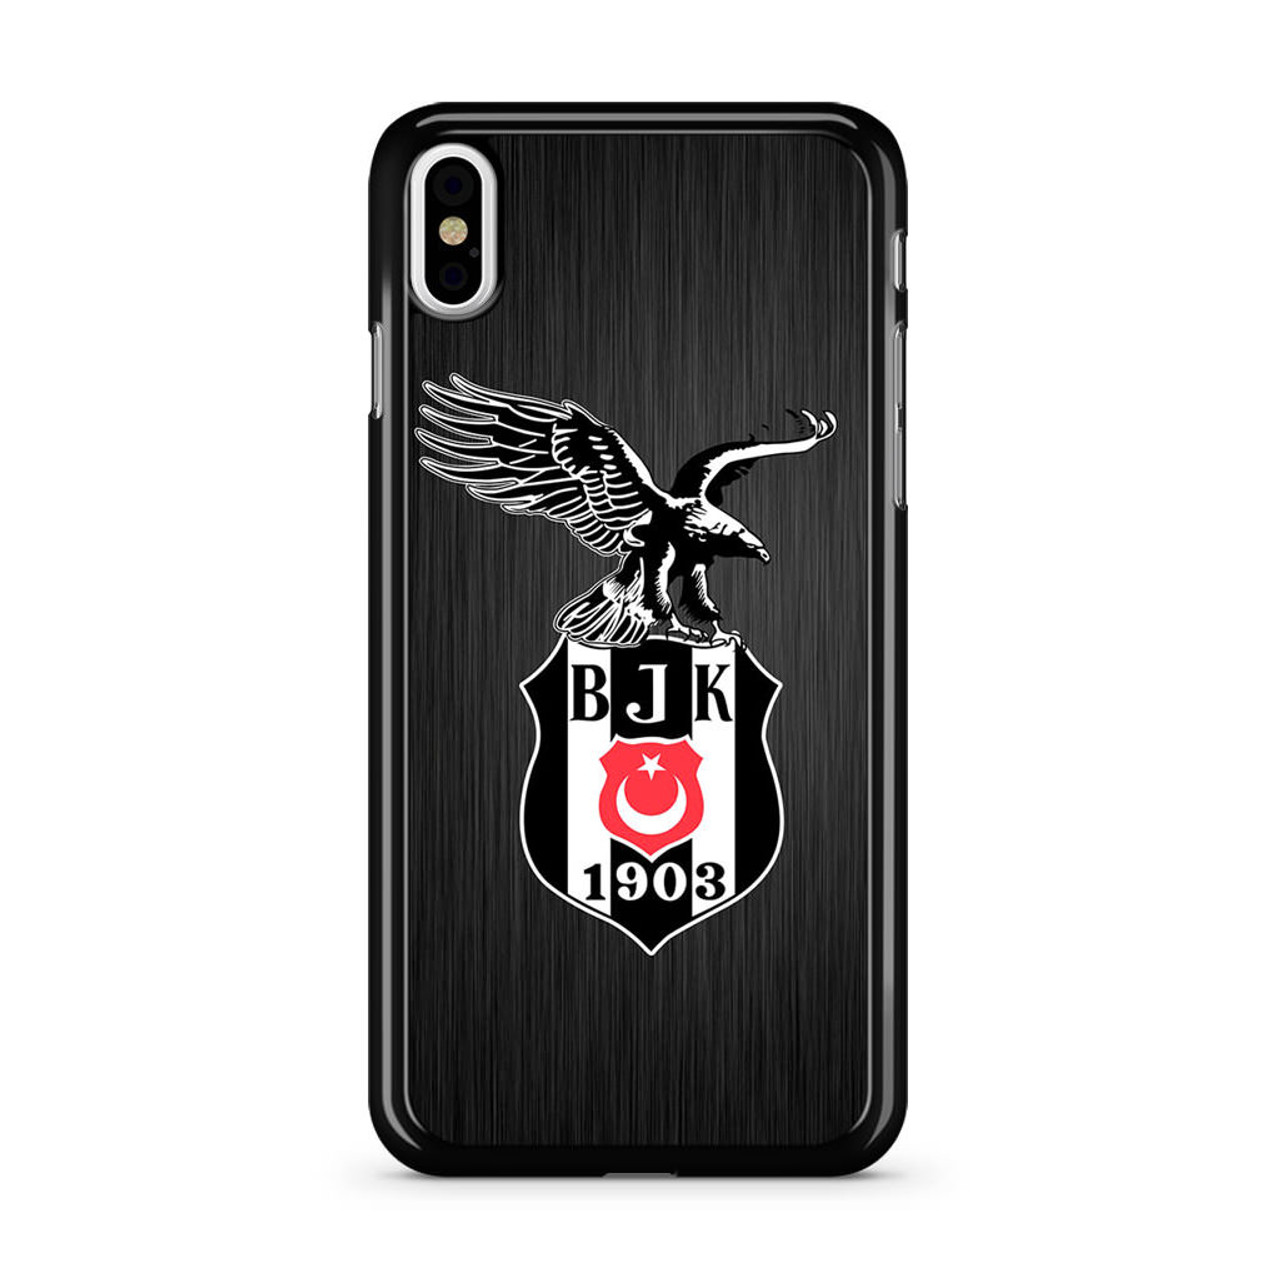 bjk iphone 6 case